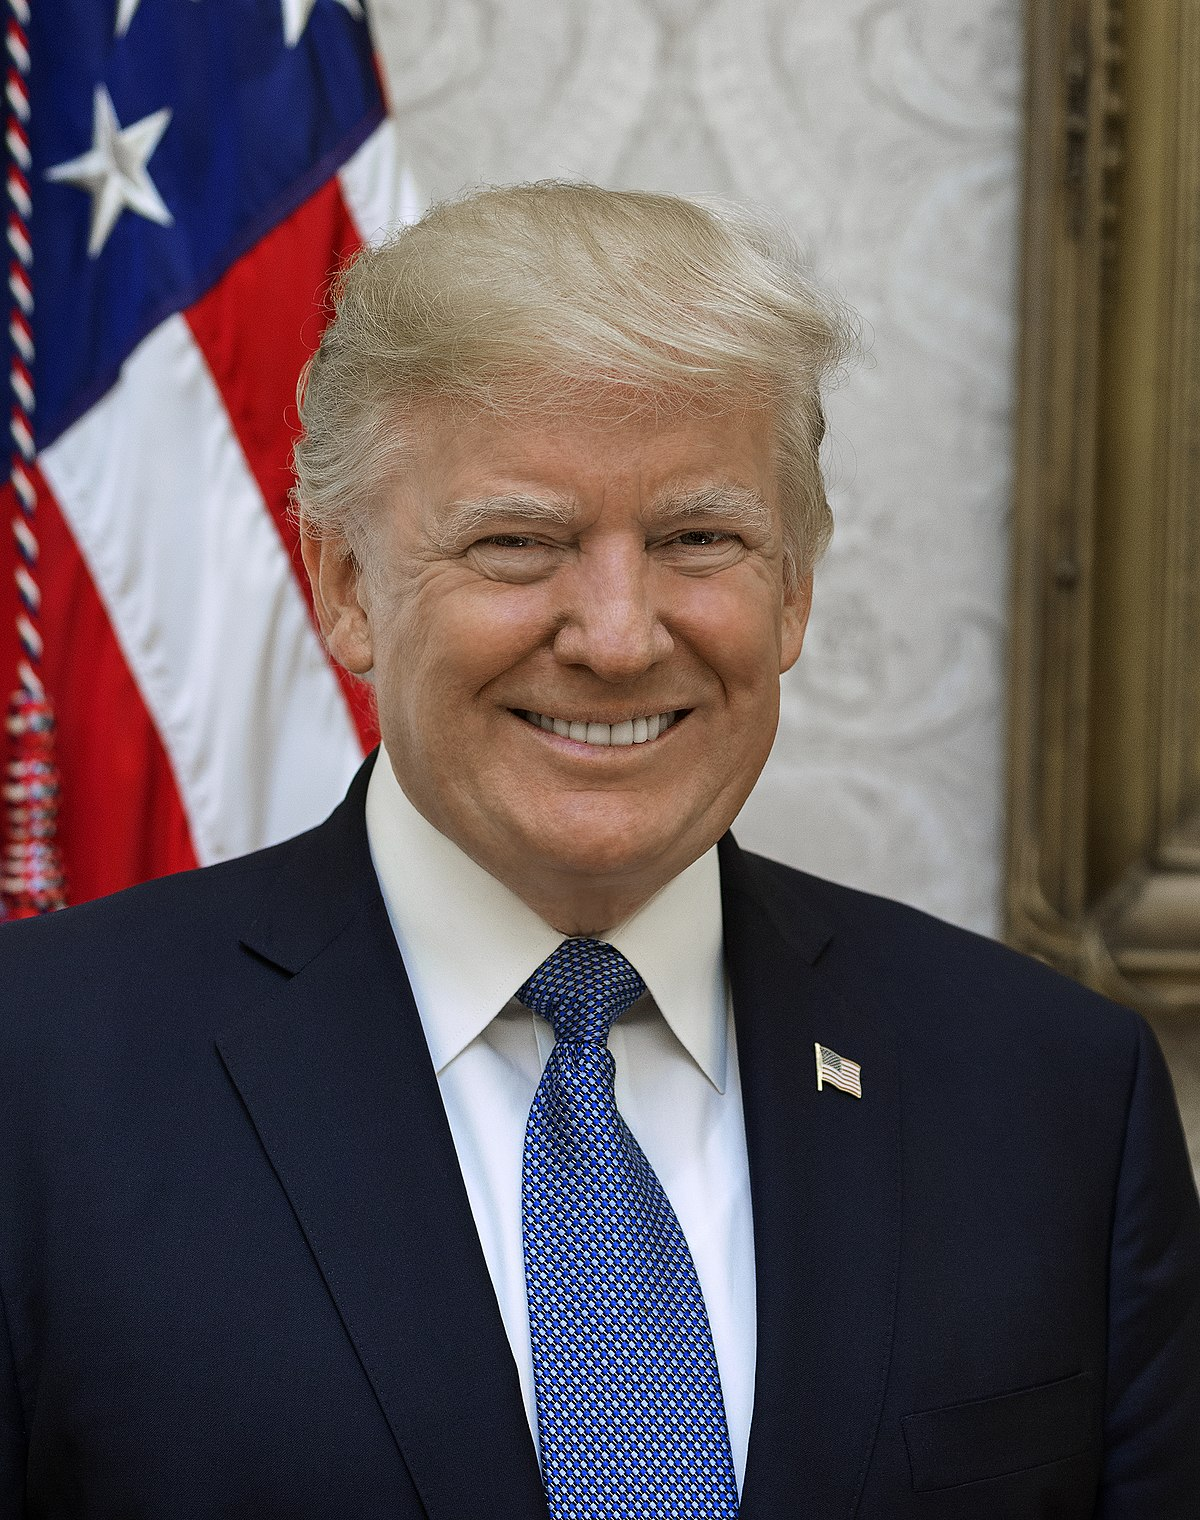 73fef3c3cbe Presidency of Donald Trump - Wikipedia